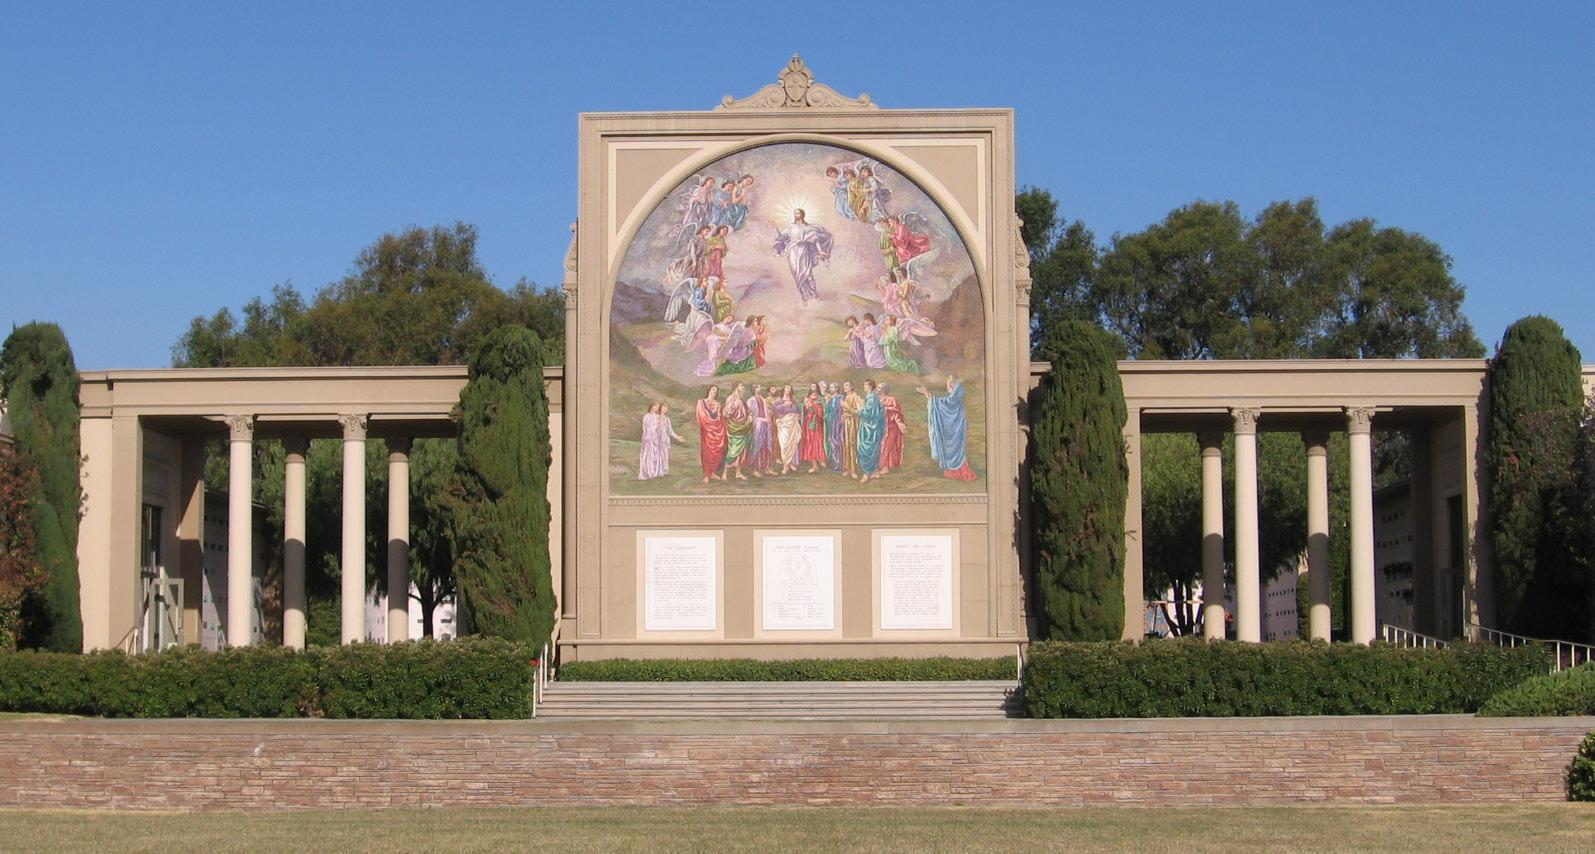 Forest Lawn Memorial Park (Cypress)